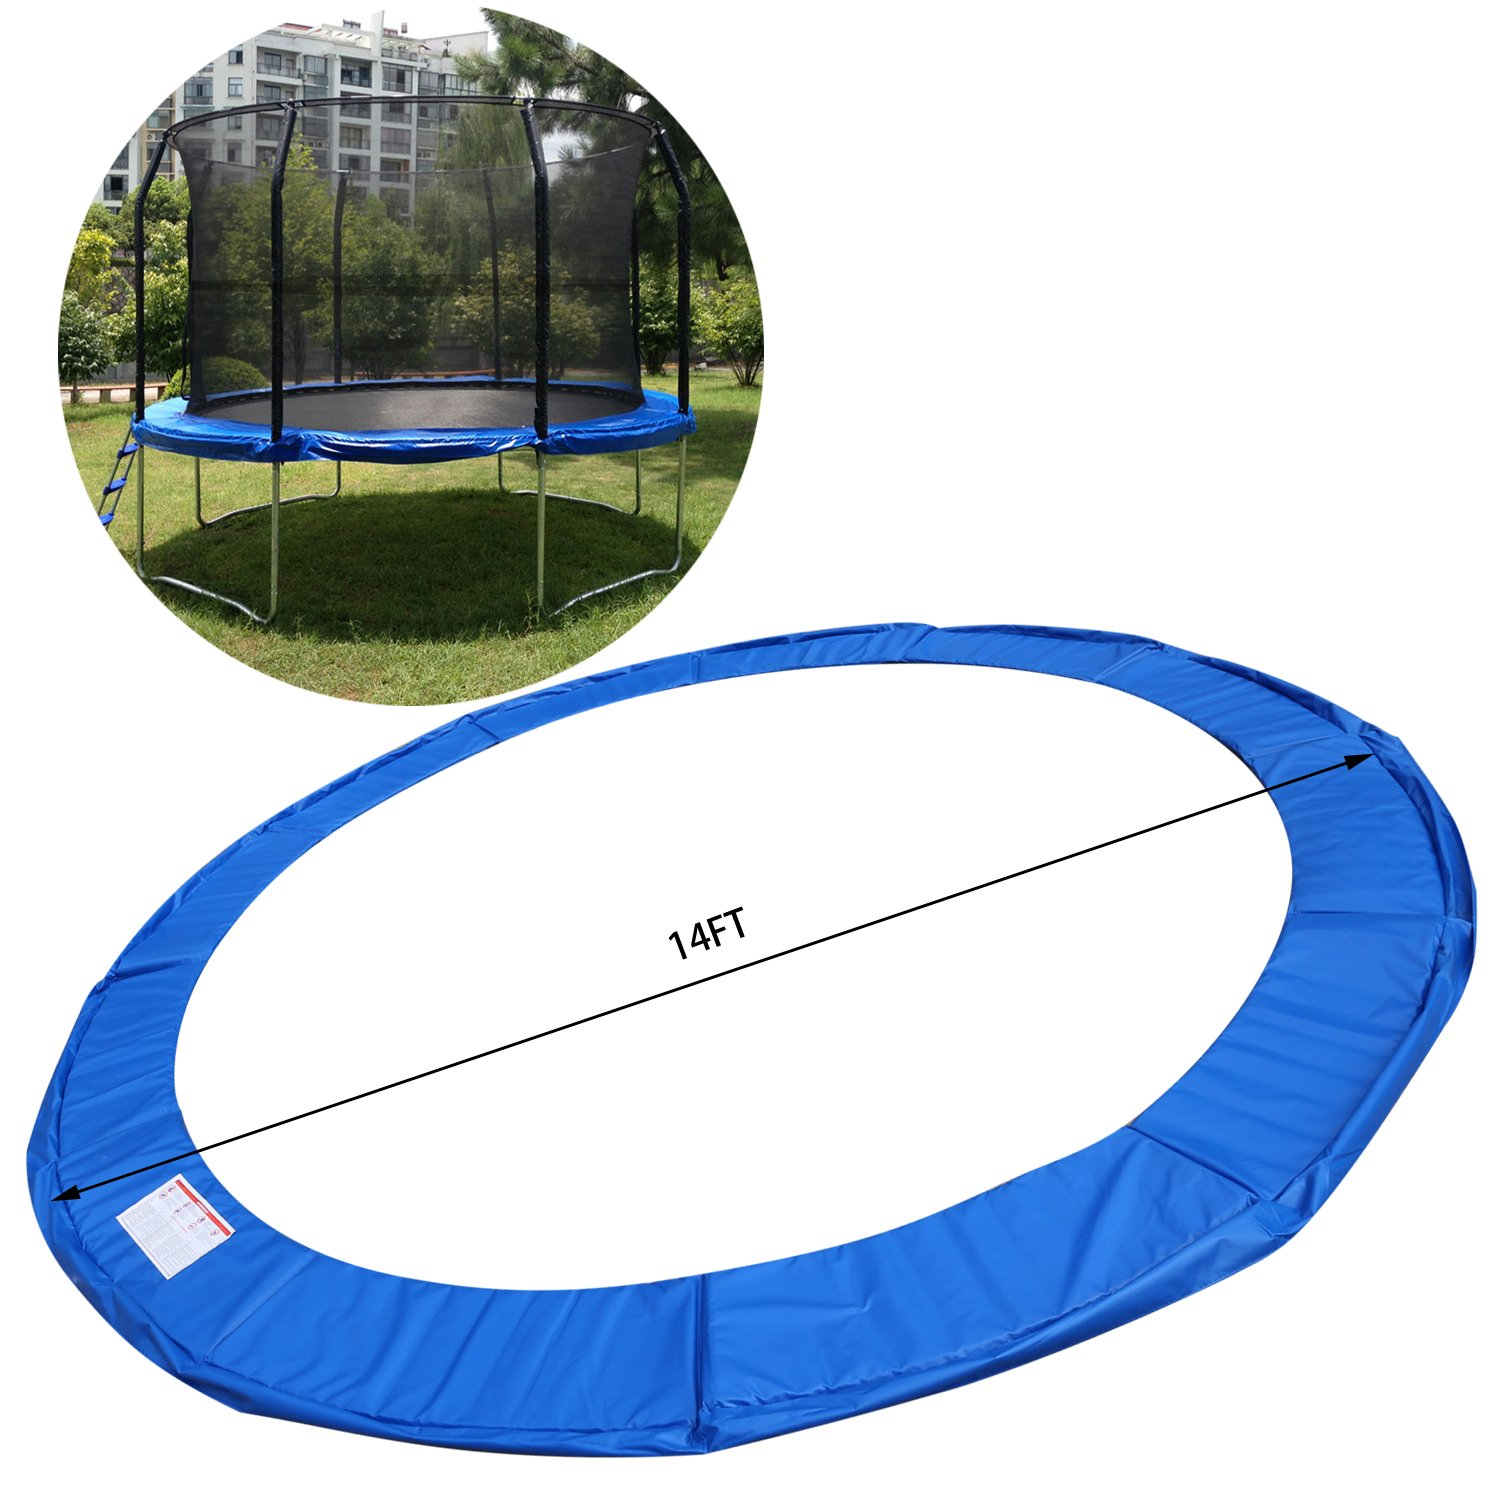 15 14 12 10 Ft Replacement Trampoline Surround PVC Pad Foam Safety Spring Cover Padding Pads (Blue, 15 Ft) by Zafuar Sports (Image #2)